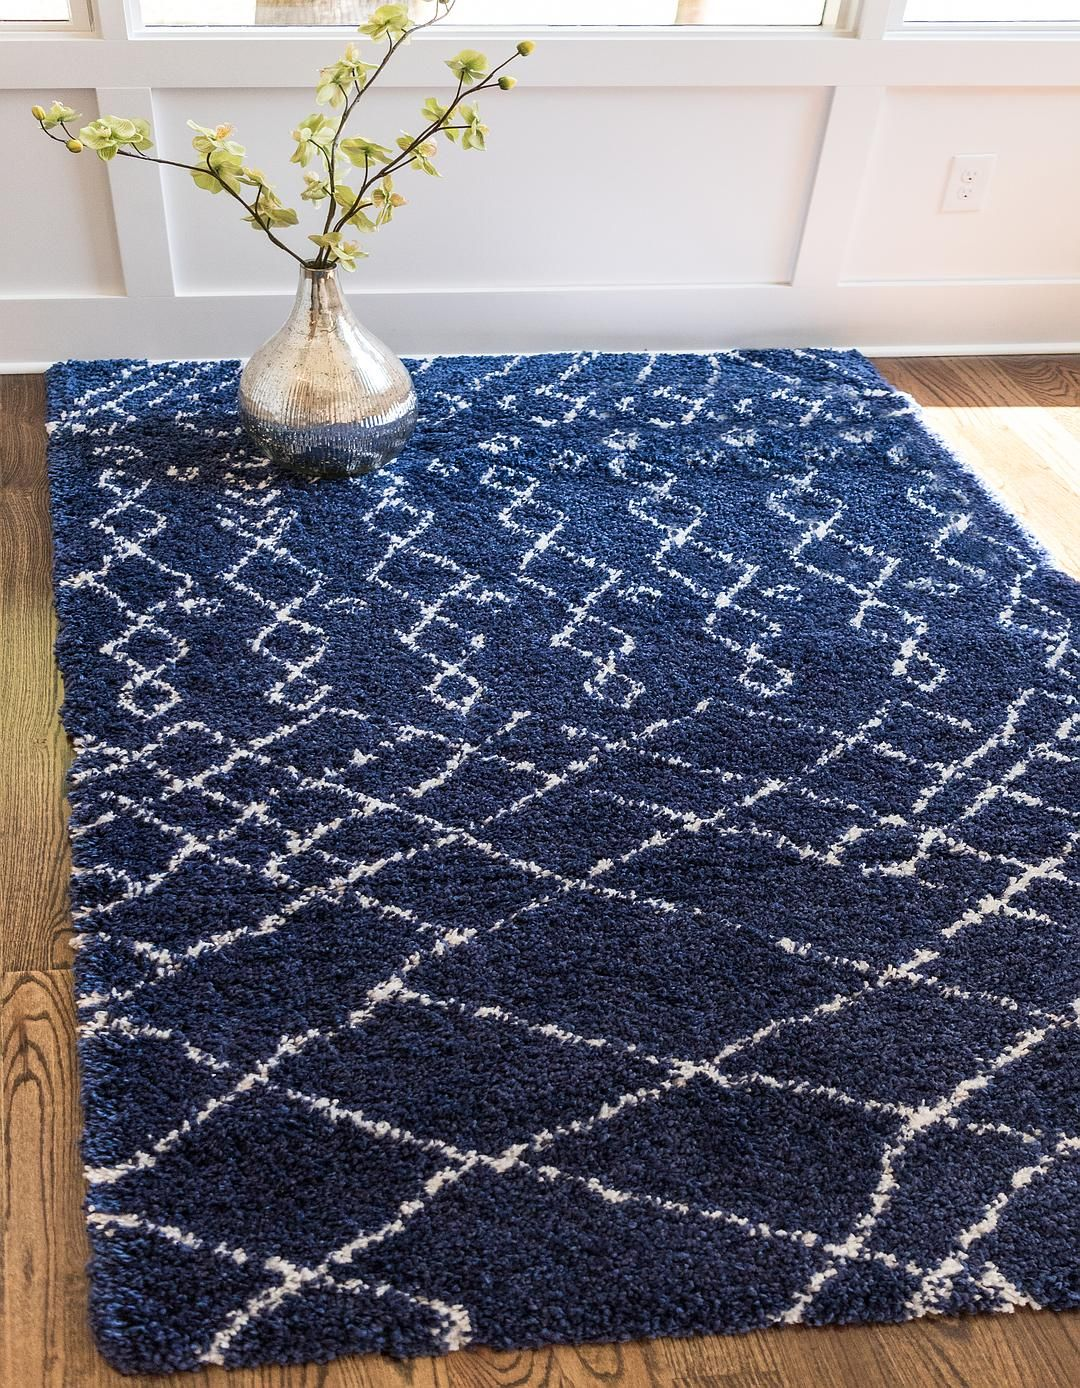 Navy Blue 5 X 8 Marrakesh Shag Rug Area Rugs Esalerugs Dark Blue Rug Blue Shag Rug Rugs